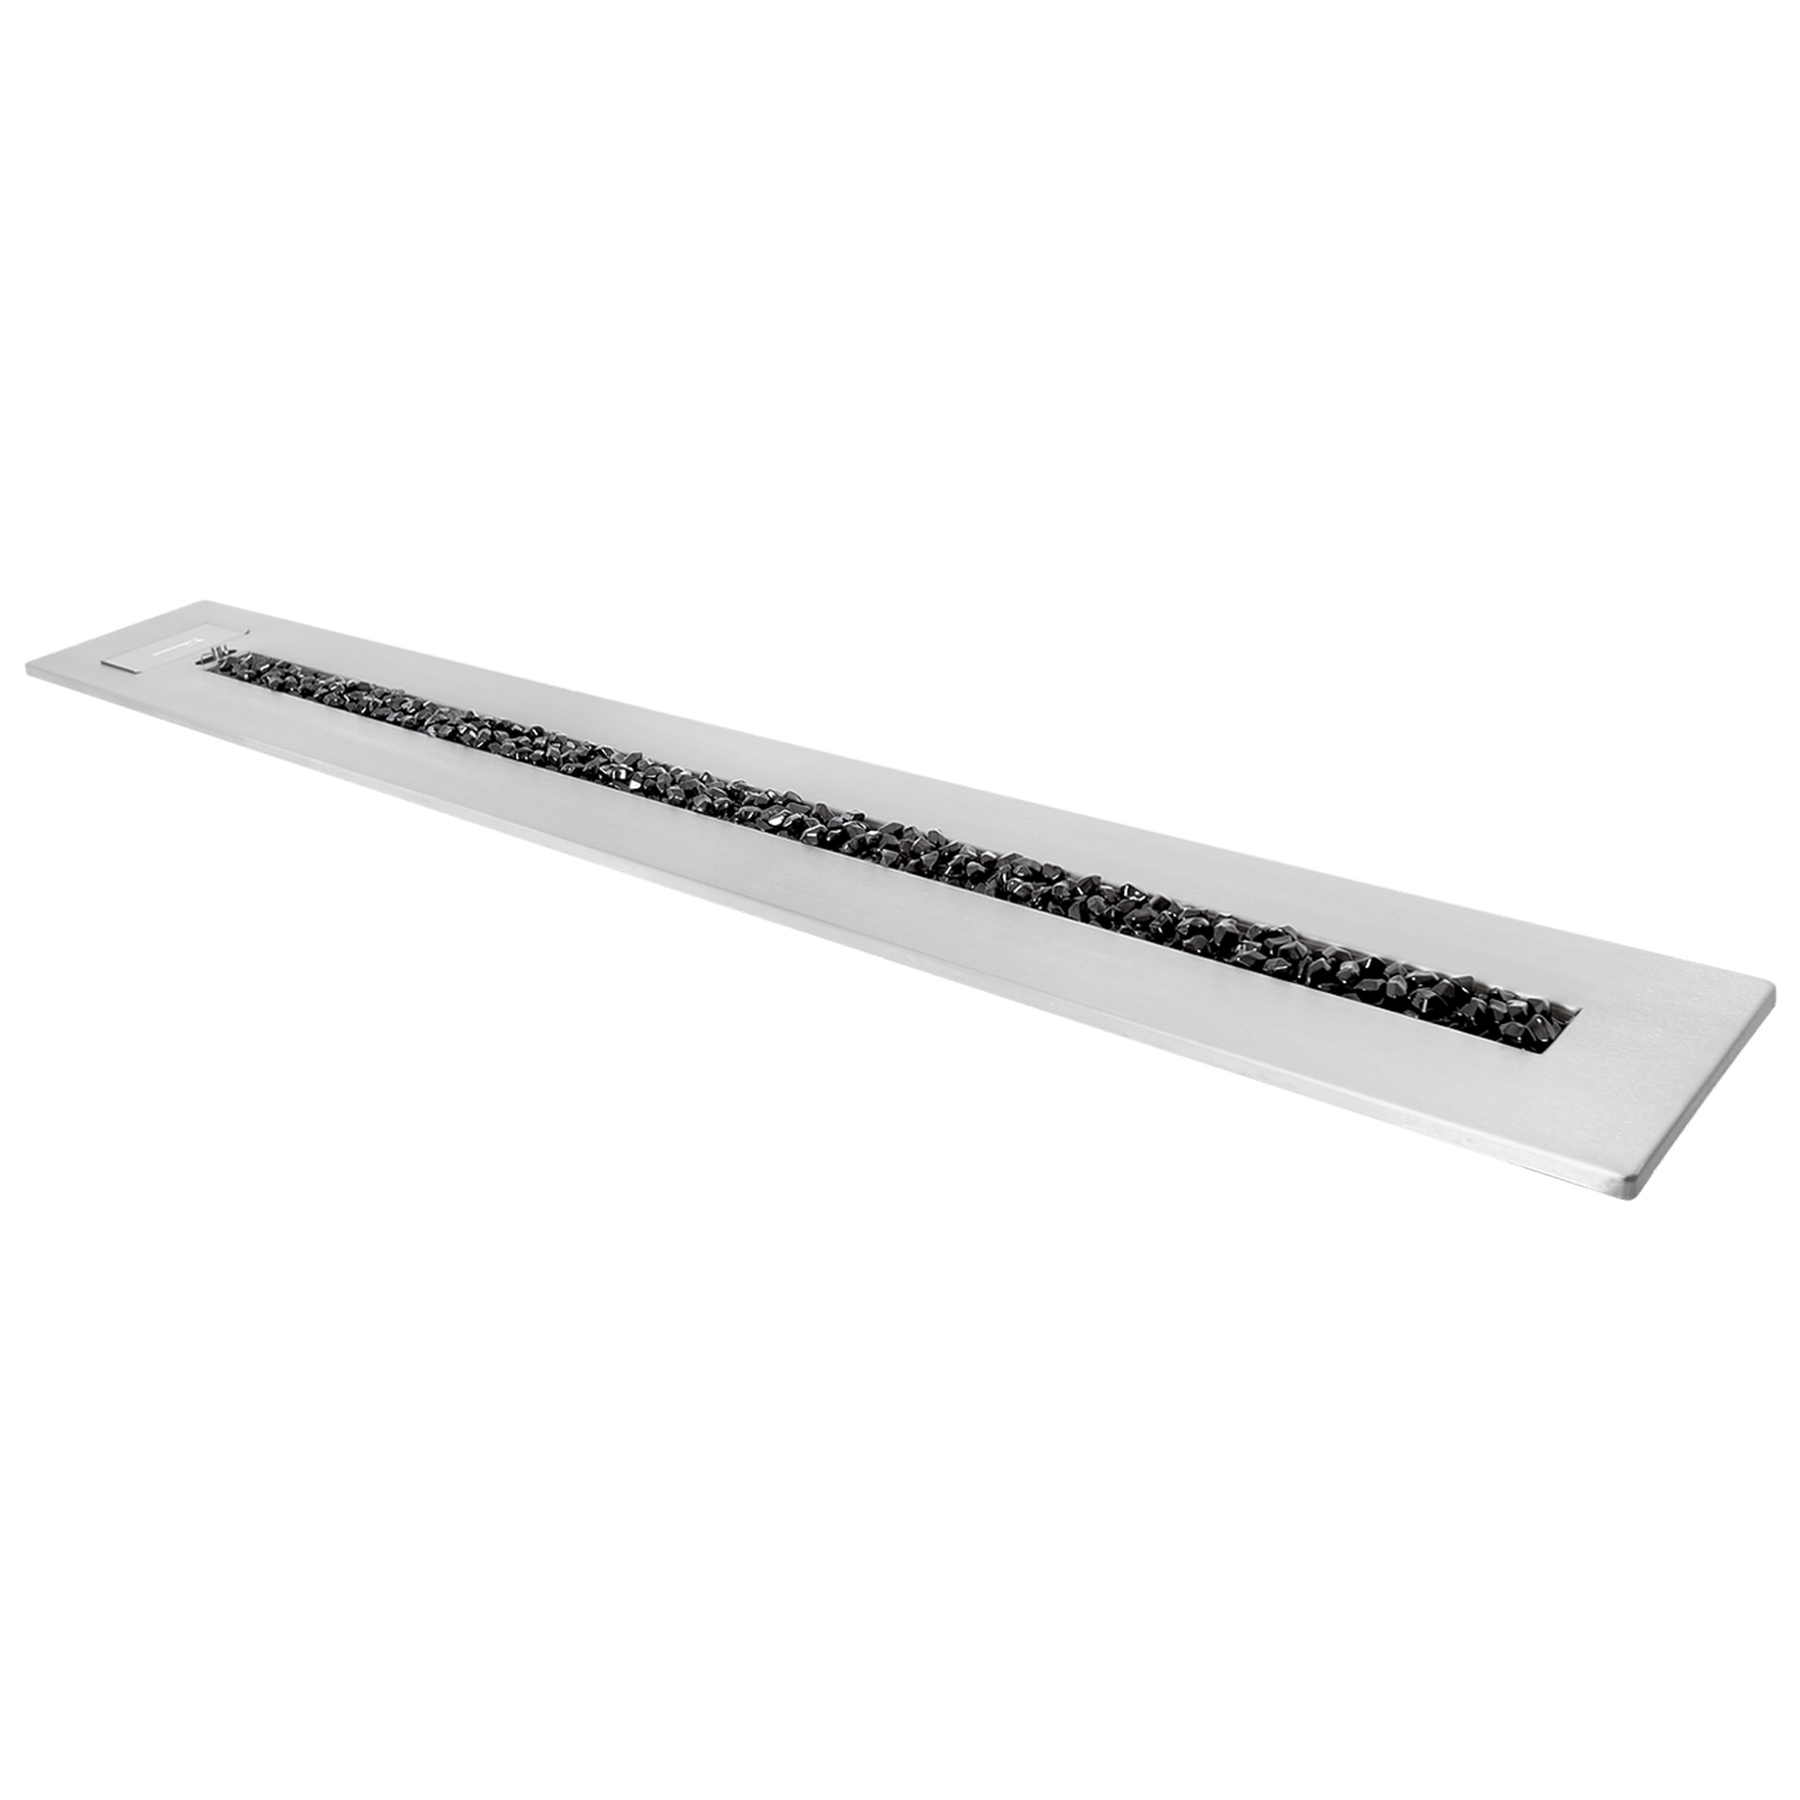 Gas-Fireplaces-Flameline-Drop-In-1600-Stainless-Steel